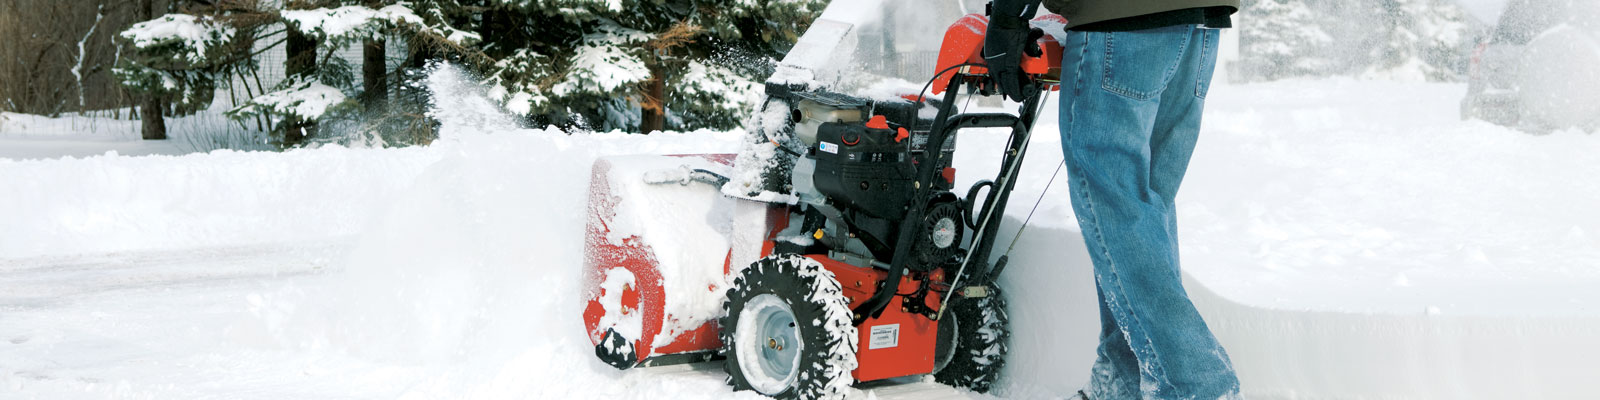 Snapper Snow Blowers